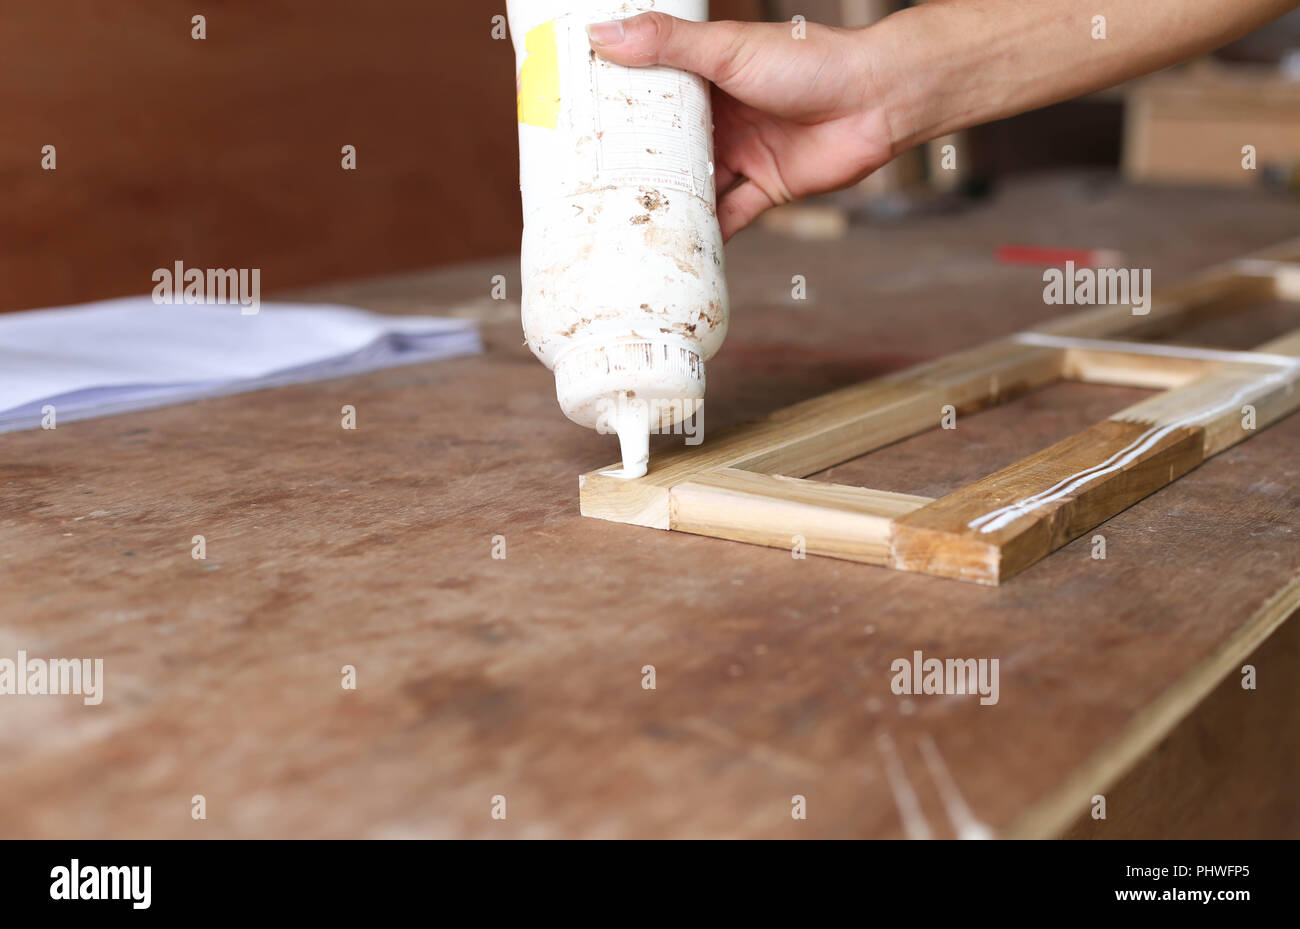 Carpenter putting glue on a piece of wood - Stock Image